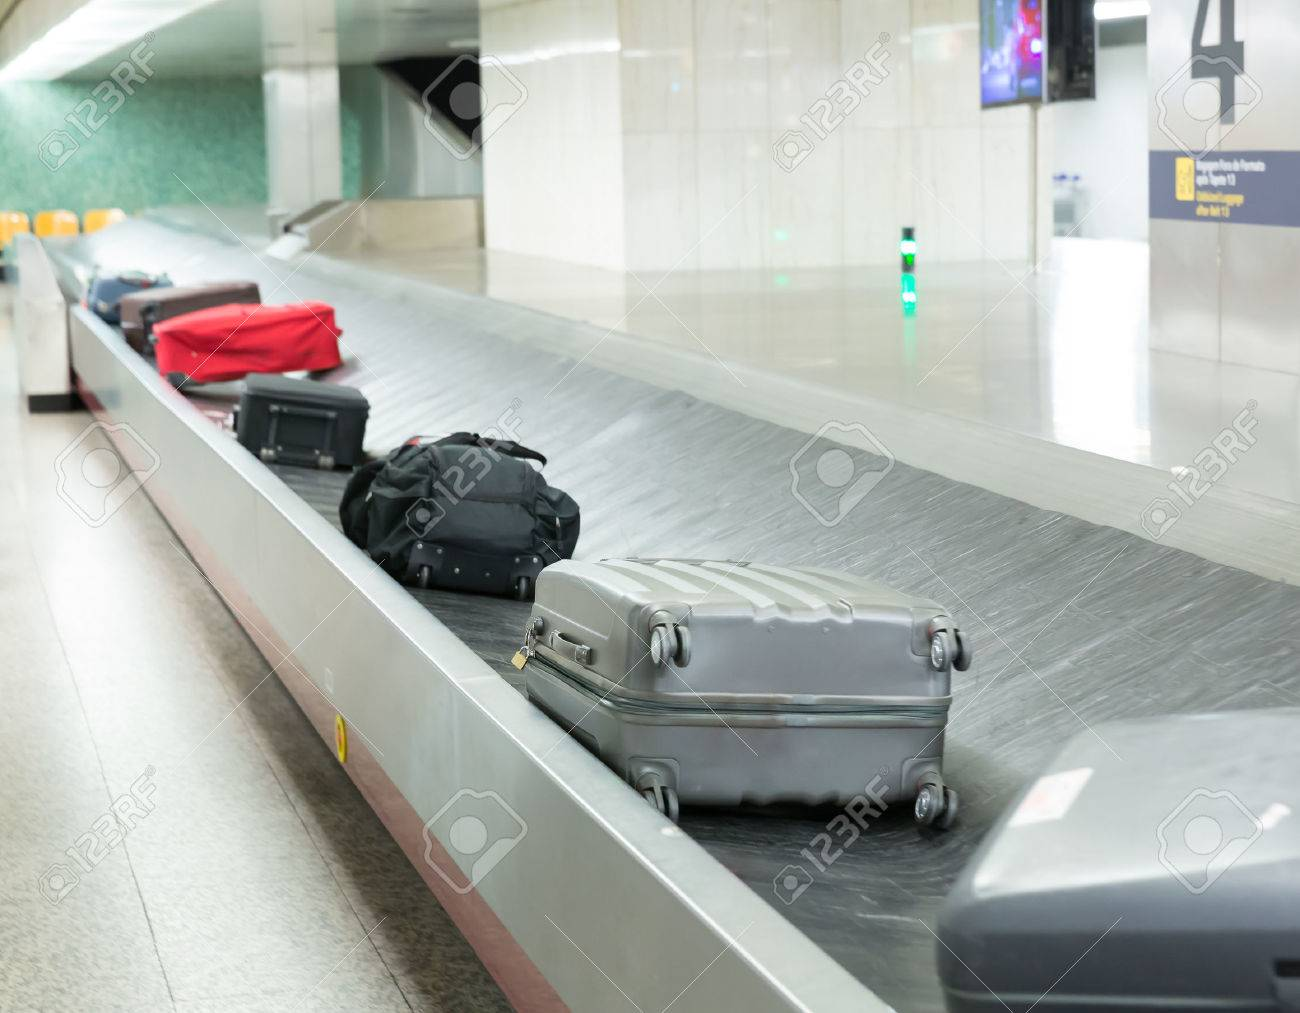 Luggage on the belt in the airport closeup Stock Photo - 45947490